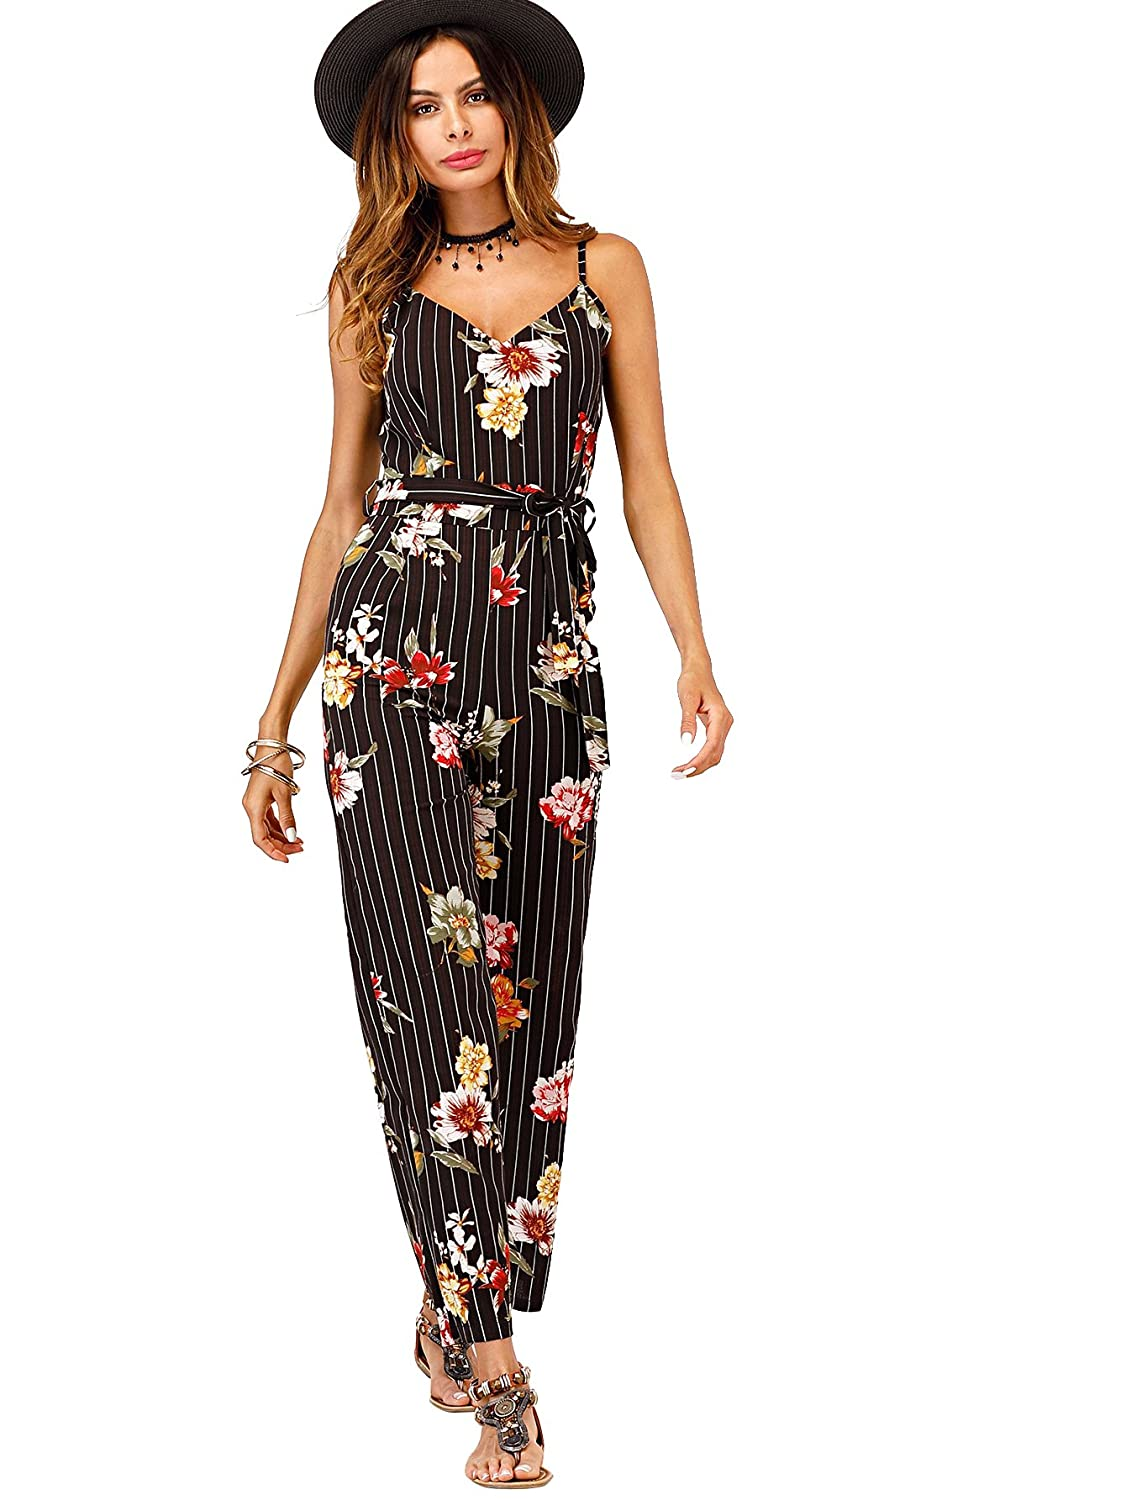 b86099774e33 Amazon.com  Romwe Women s Allover Floral Flower Graphic Striped Mixed Print Sleeveless  Self Tie Waist Long Wide Leg Jumpsuit  Clothing